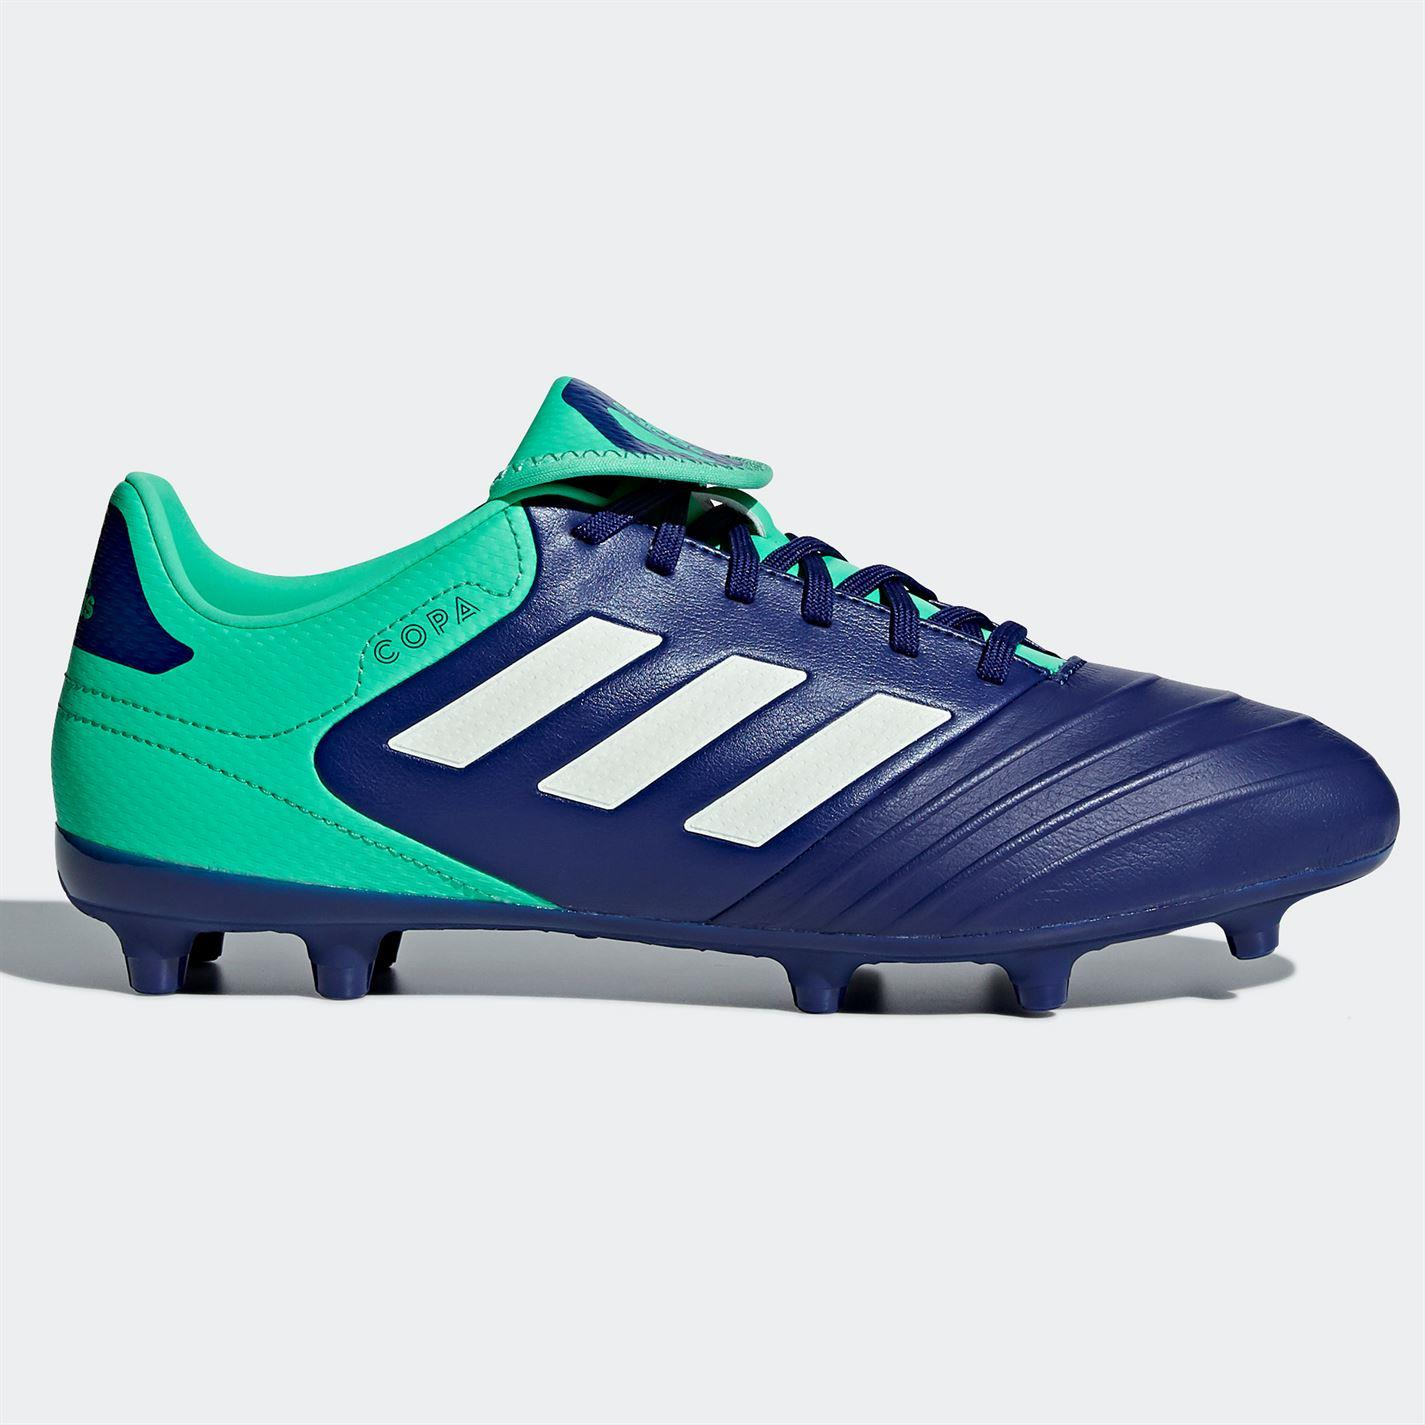 Details about adidas Copa 18.3 FG Firm Ground Football Boots Mens Blue  Soccer Shoes Cleats